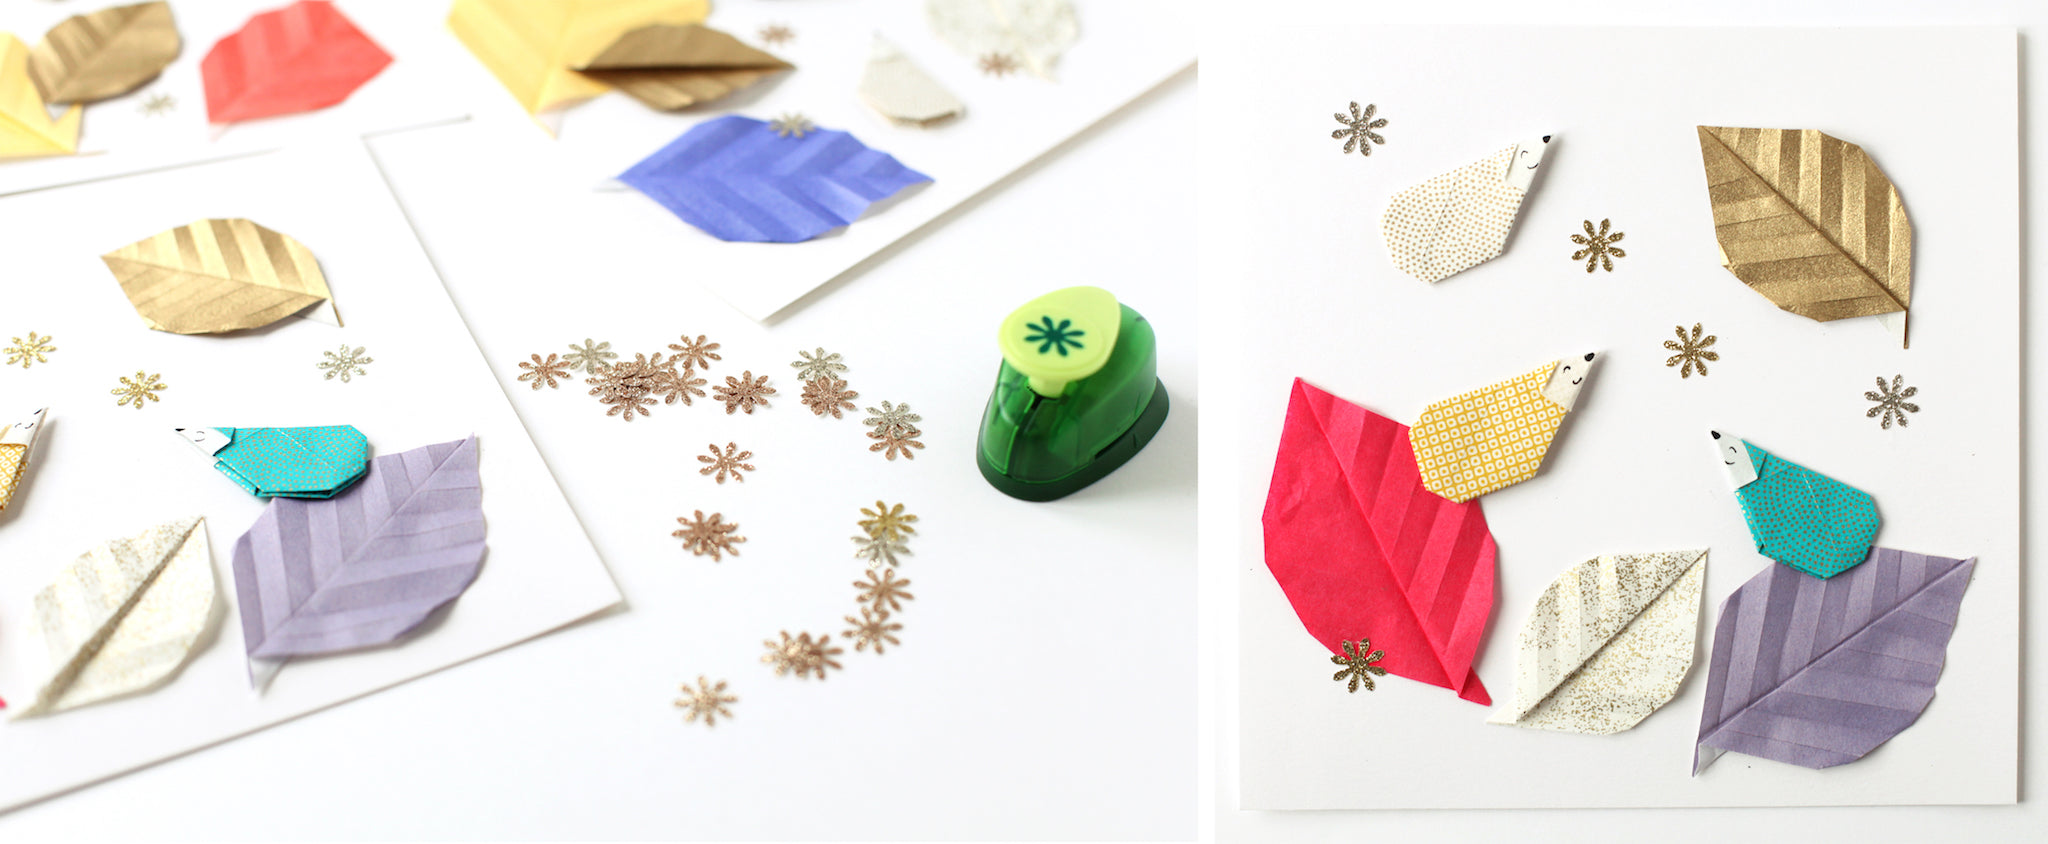 article-blog-diy-carte-voeux-herisson-origami-ambiance-3